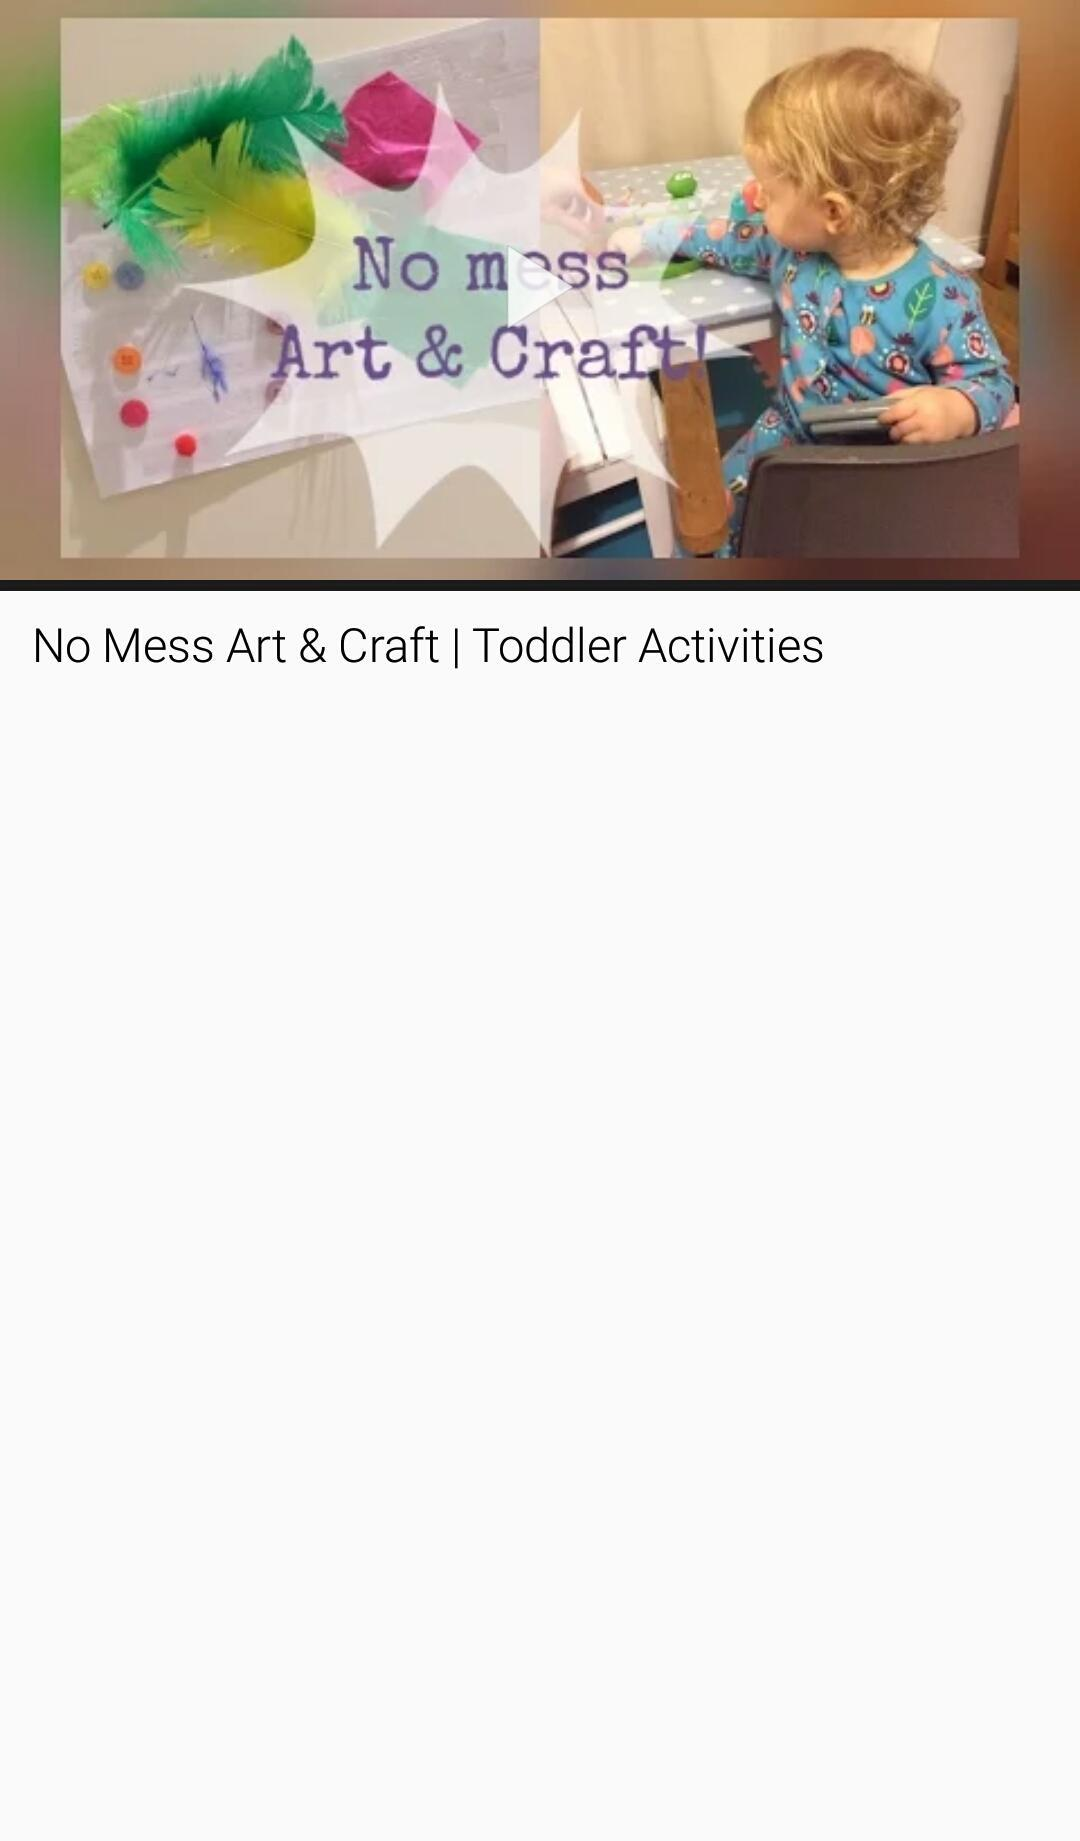 Waste Material Art and Craft Ideas with VIDEO App poster